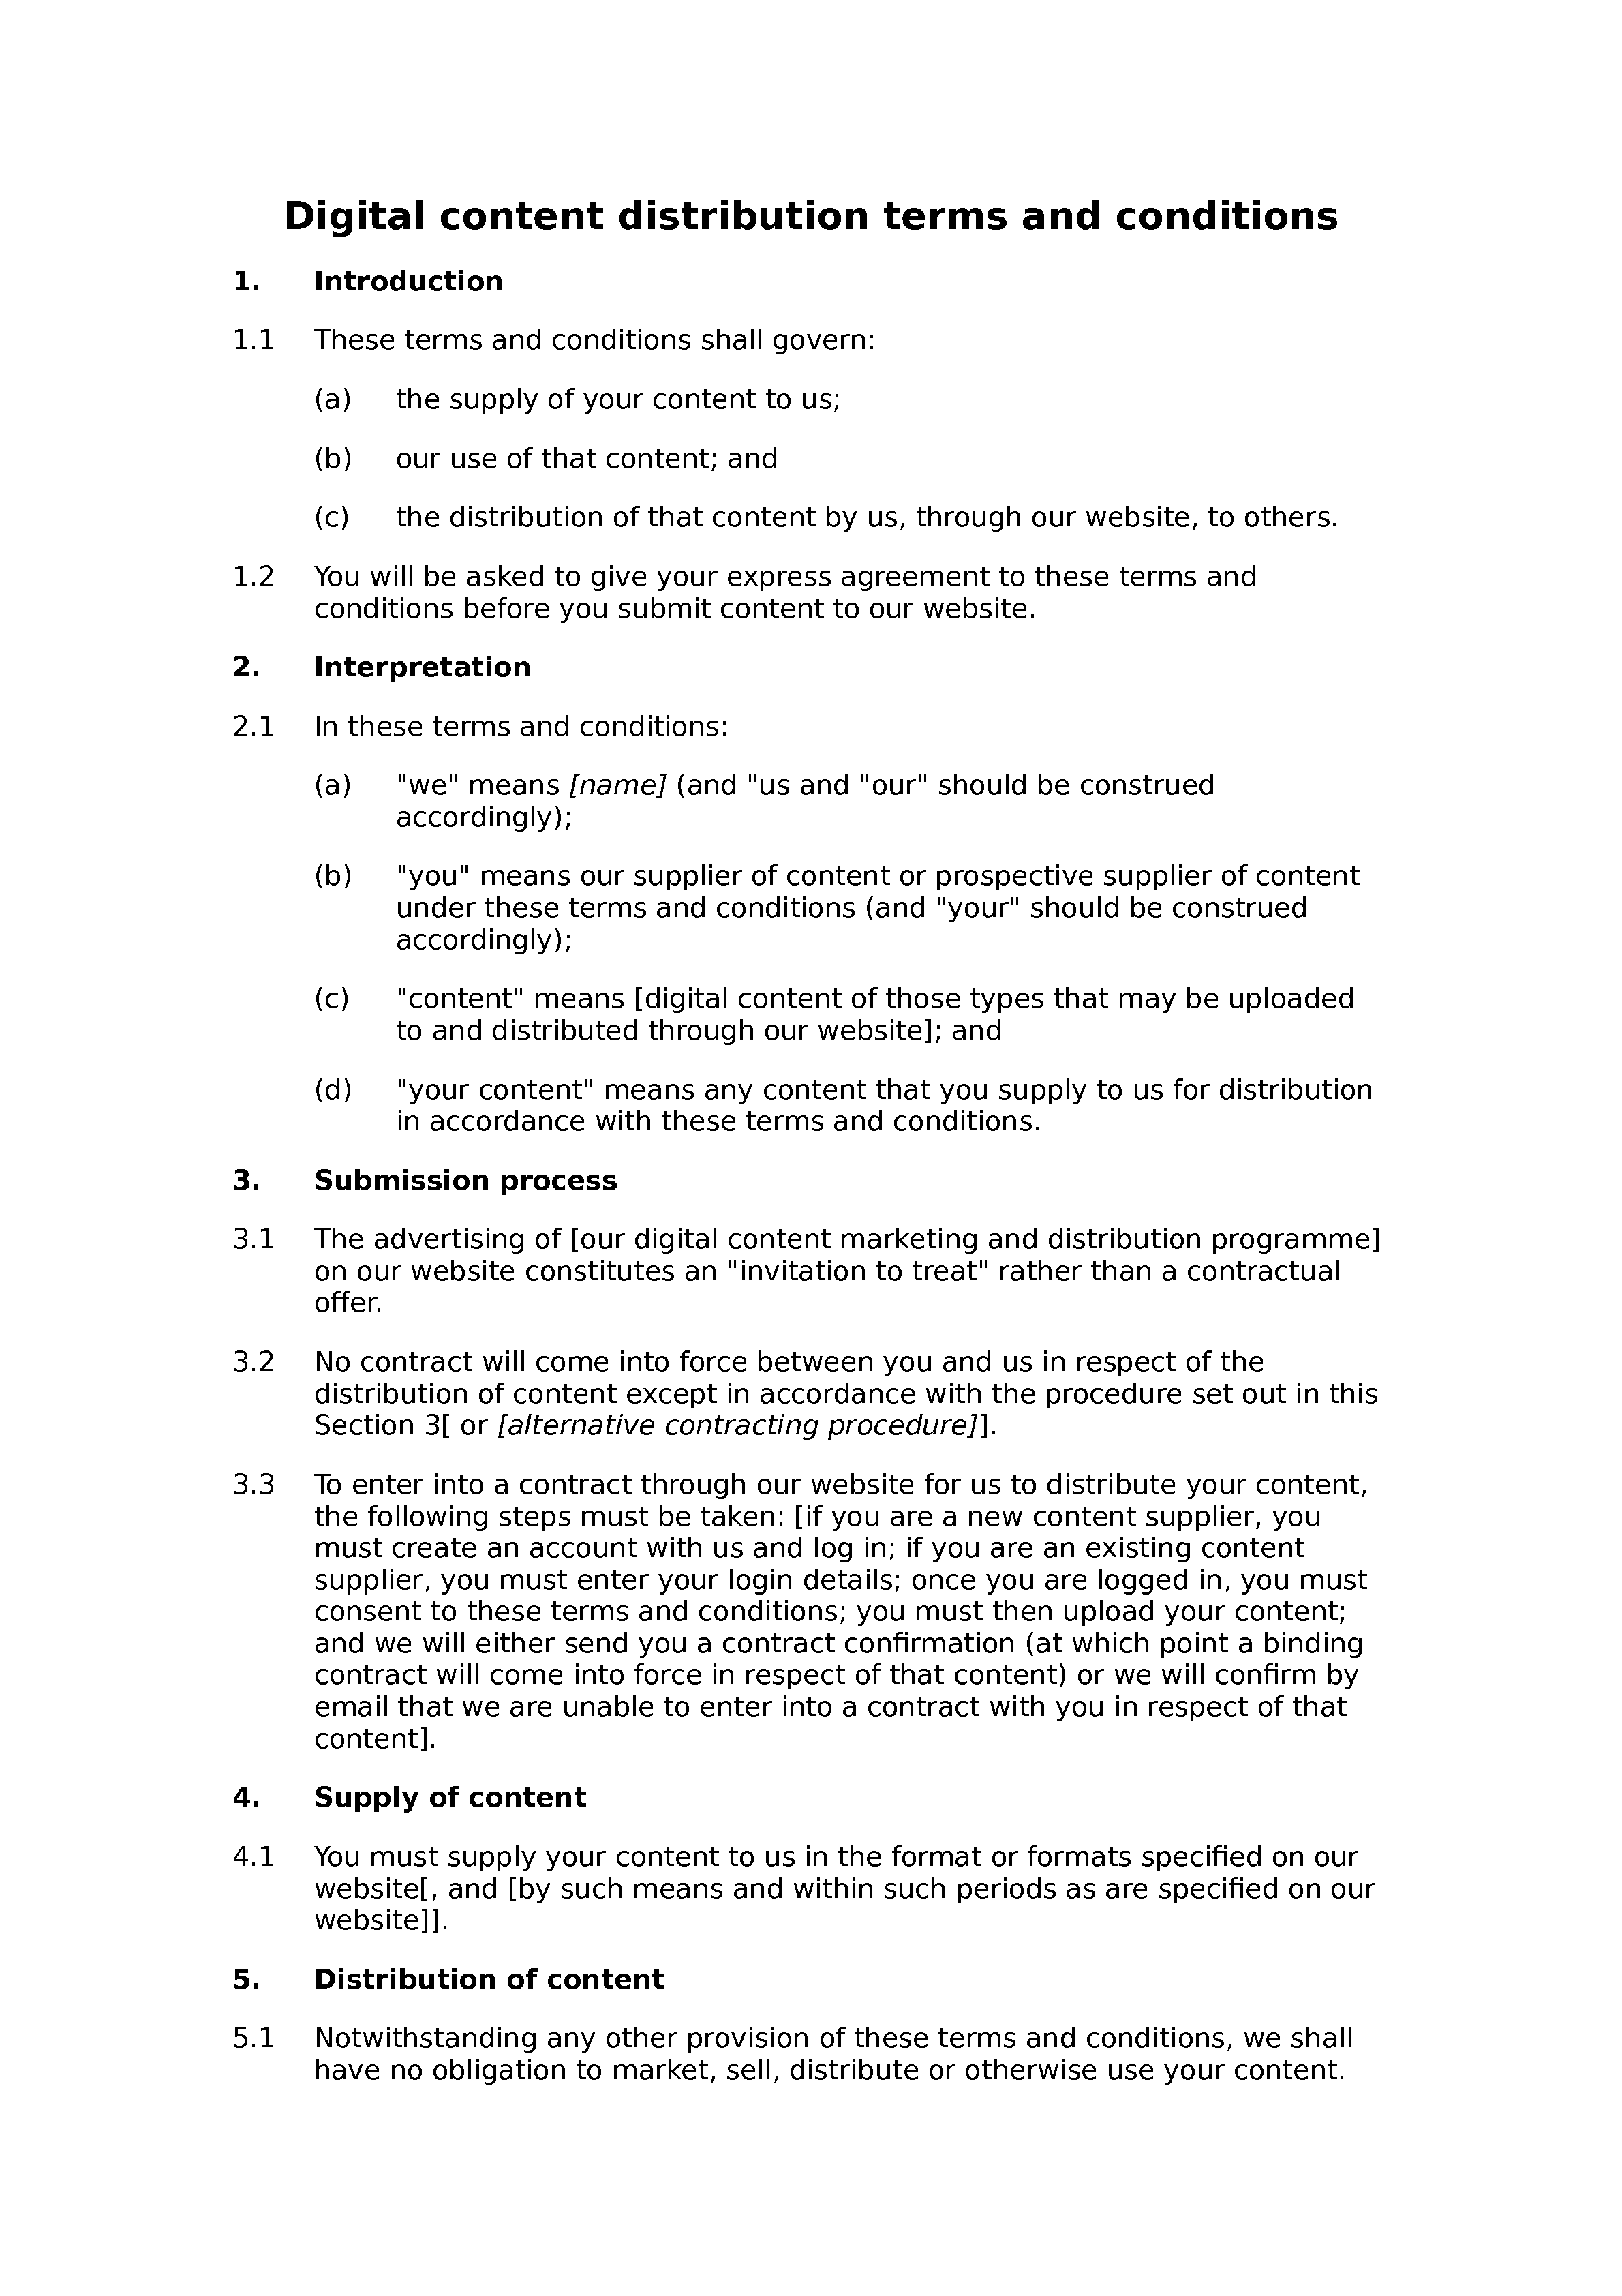 Digital content distribution terms and conditions document preview